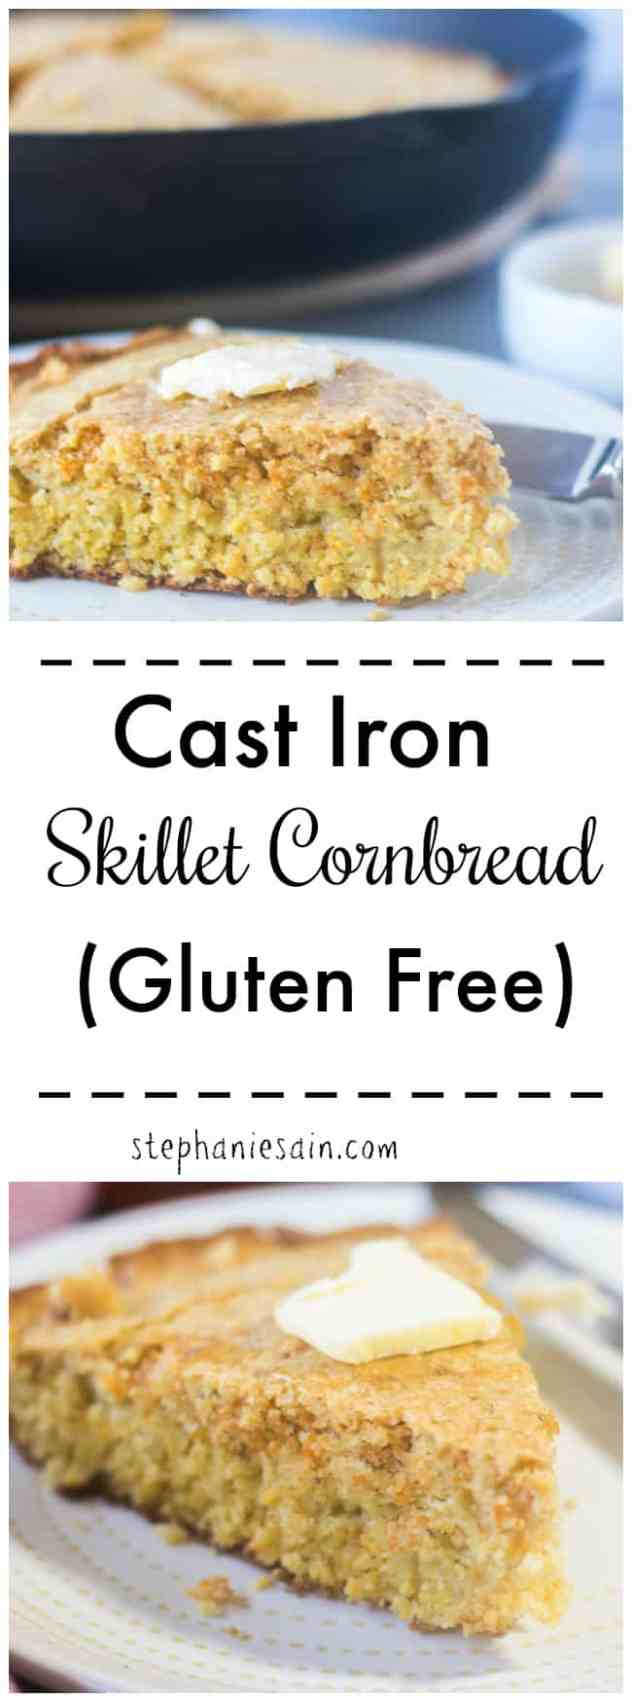 This Cast Iron Skillet Cornbread is super easy to prepare and goes perfect with all your Fall/Winter comfort foods such as soups & chili. Gluten Free.